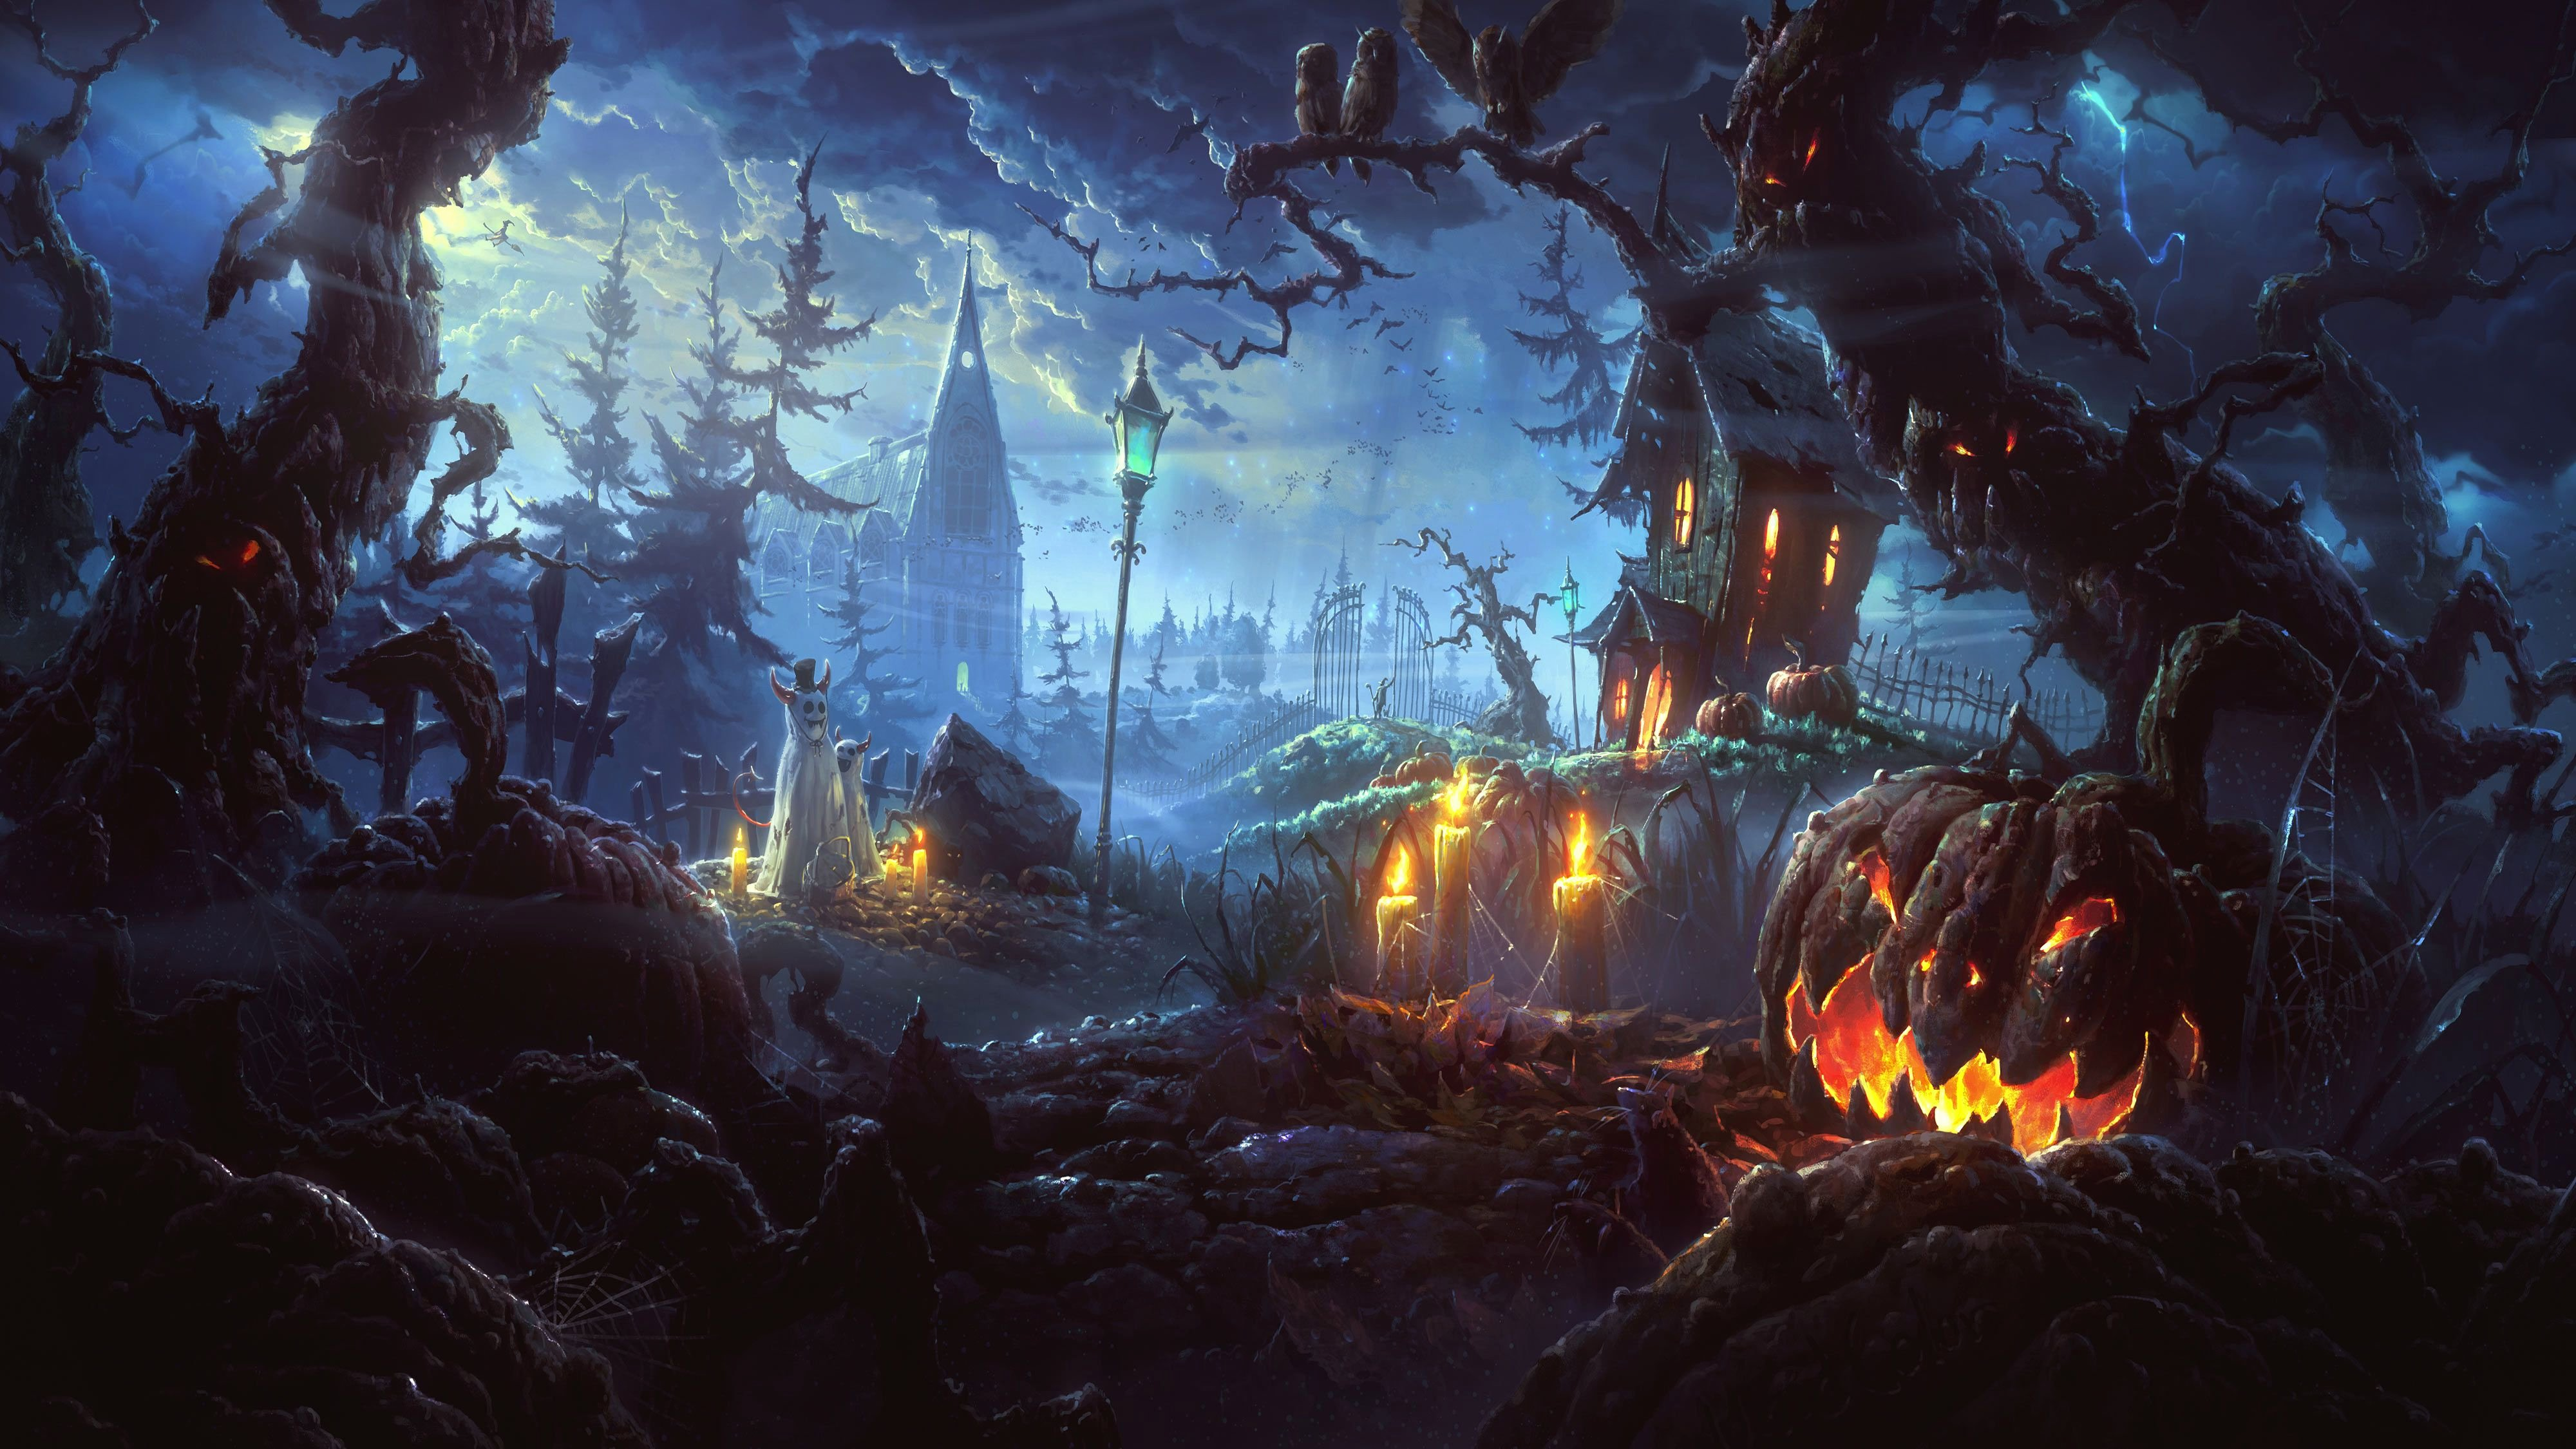 Free Halloween Background Images Awesome Halloween Wallpapers Free Puter Desktop Hd Wallpapers Halloween Wallpapers Halloween